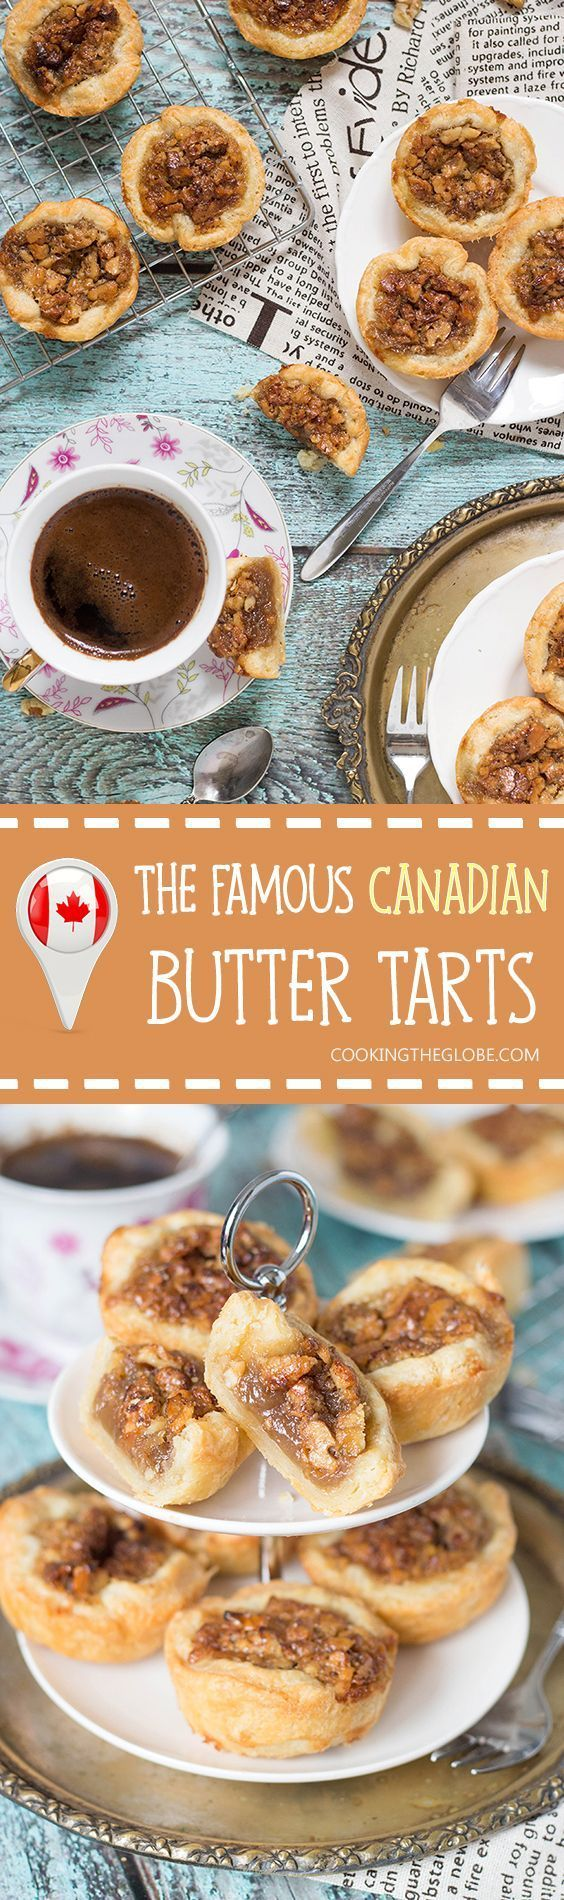 Butter Tarts are the traditional Canadian dessert. These little cute treats are sweet and buttery. One of the best desserts I have ever tried! |…